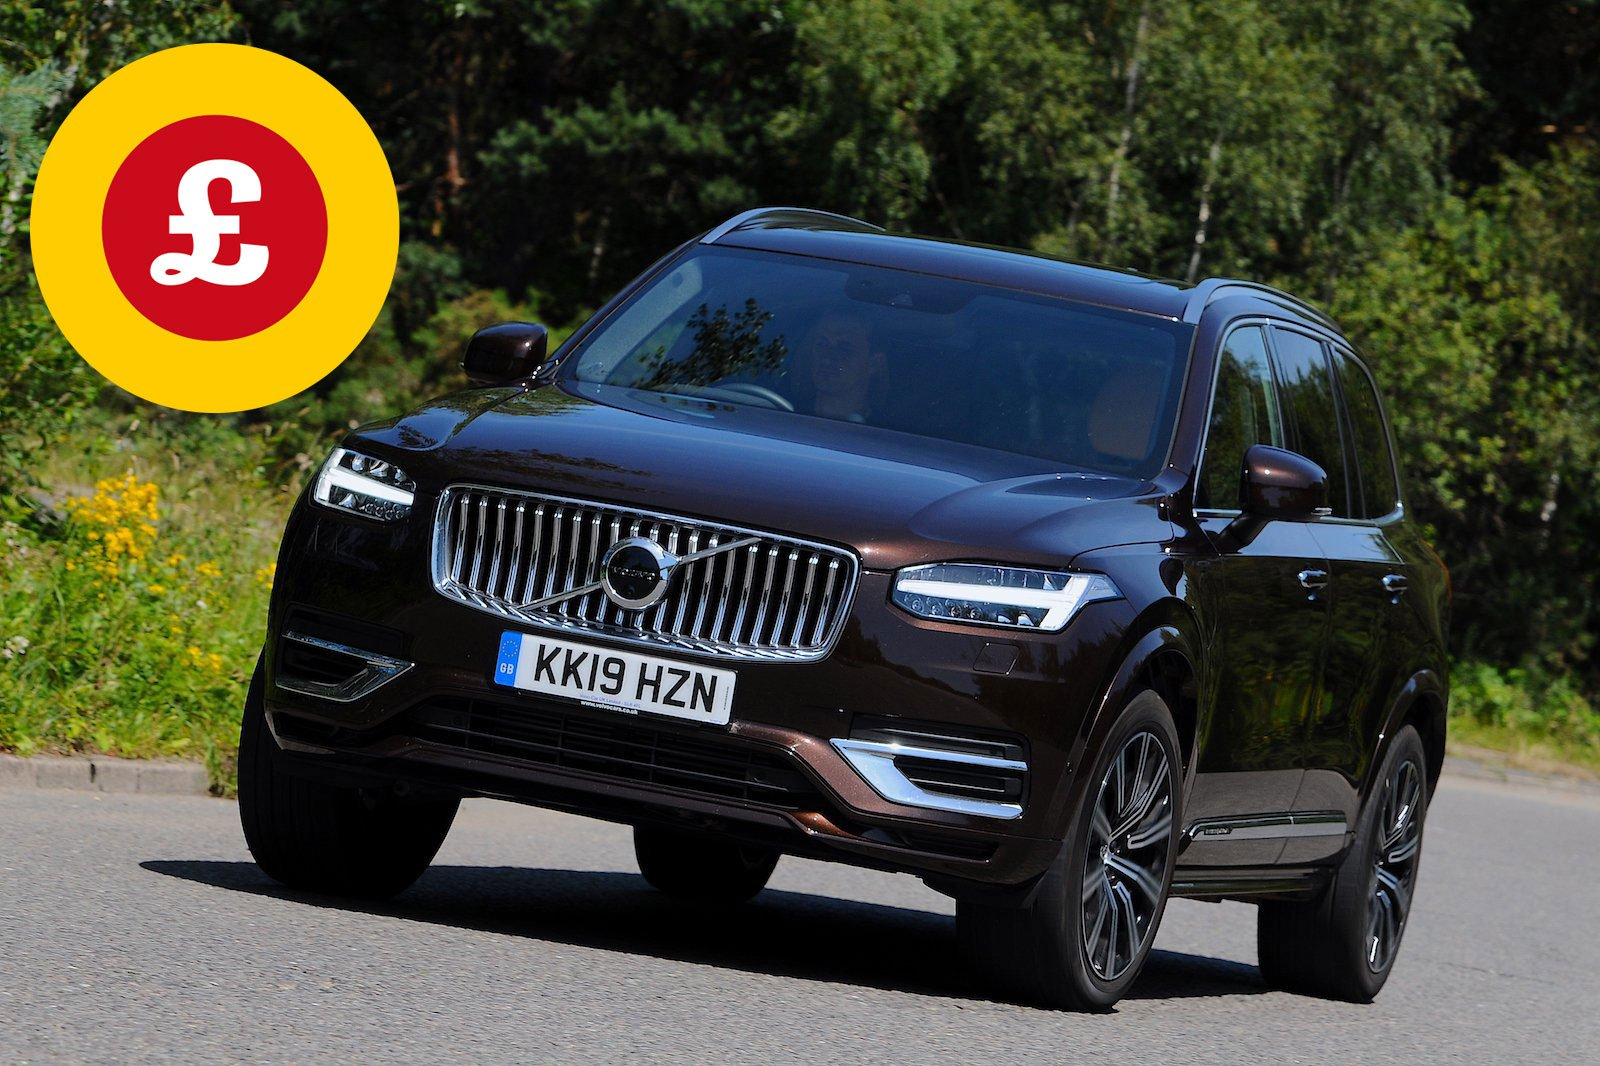 Volvo XC90 with Target Price logo